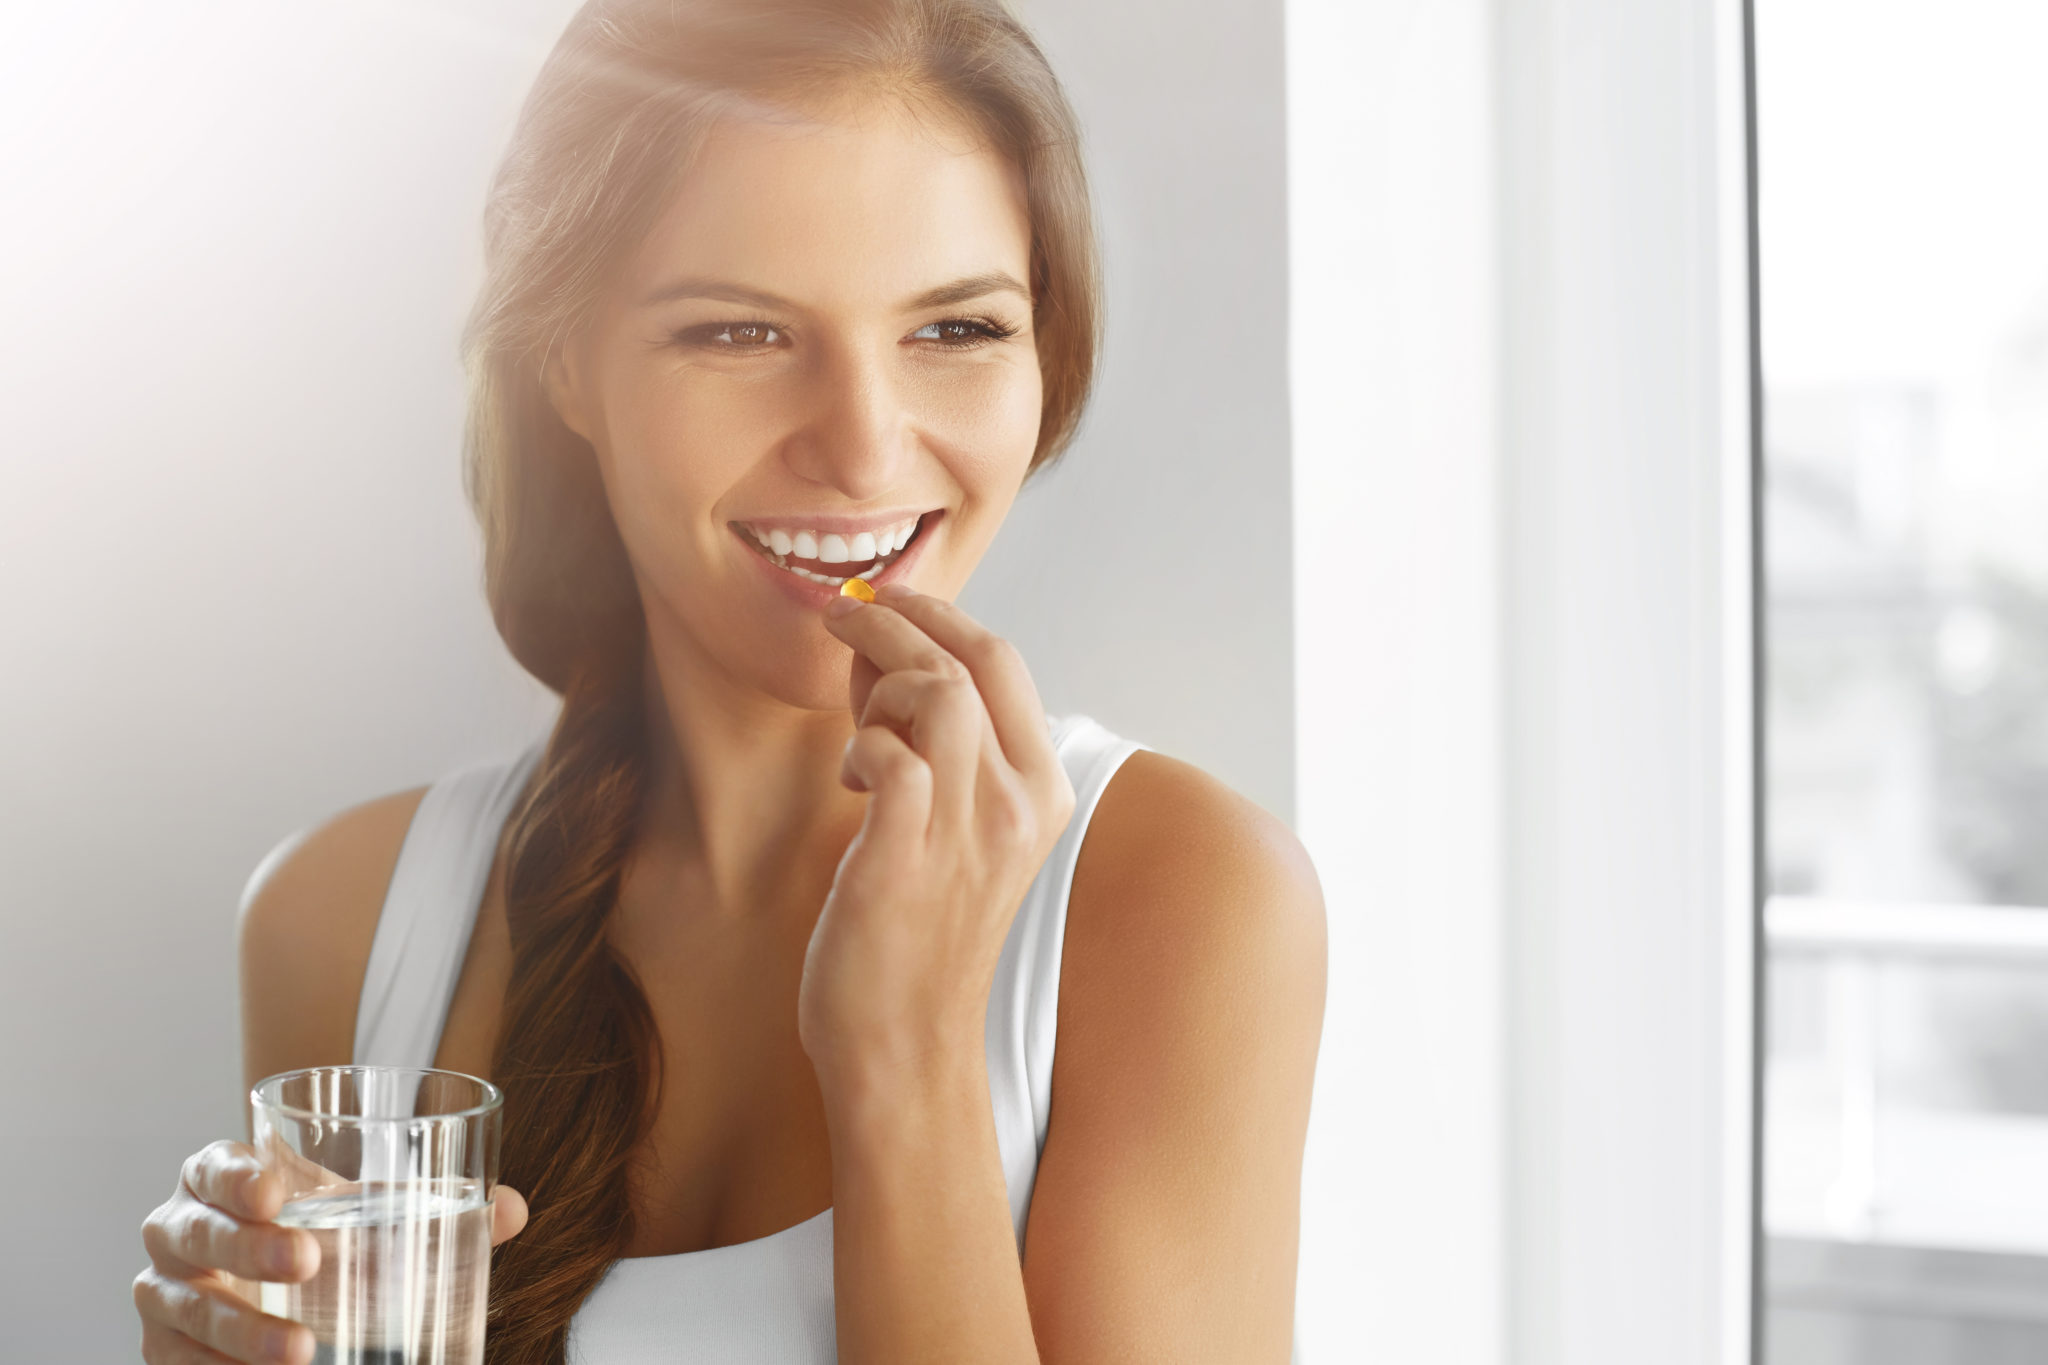 A young woman taking her daily multivitamin with a glass of water as part of a sustainable weight loss plan.